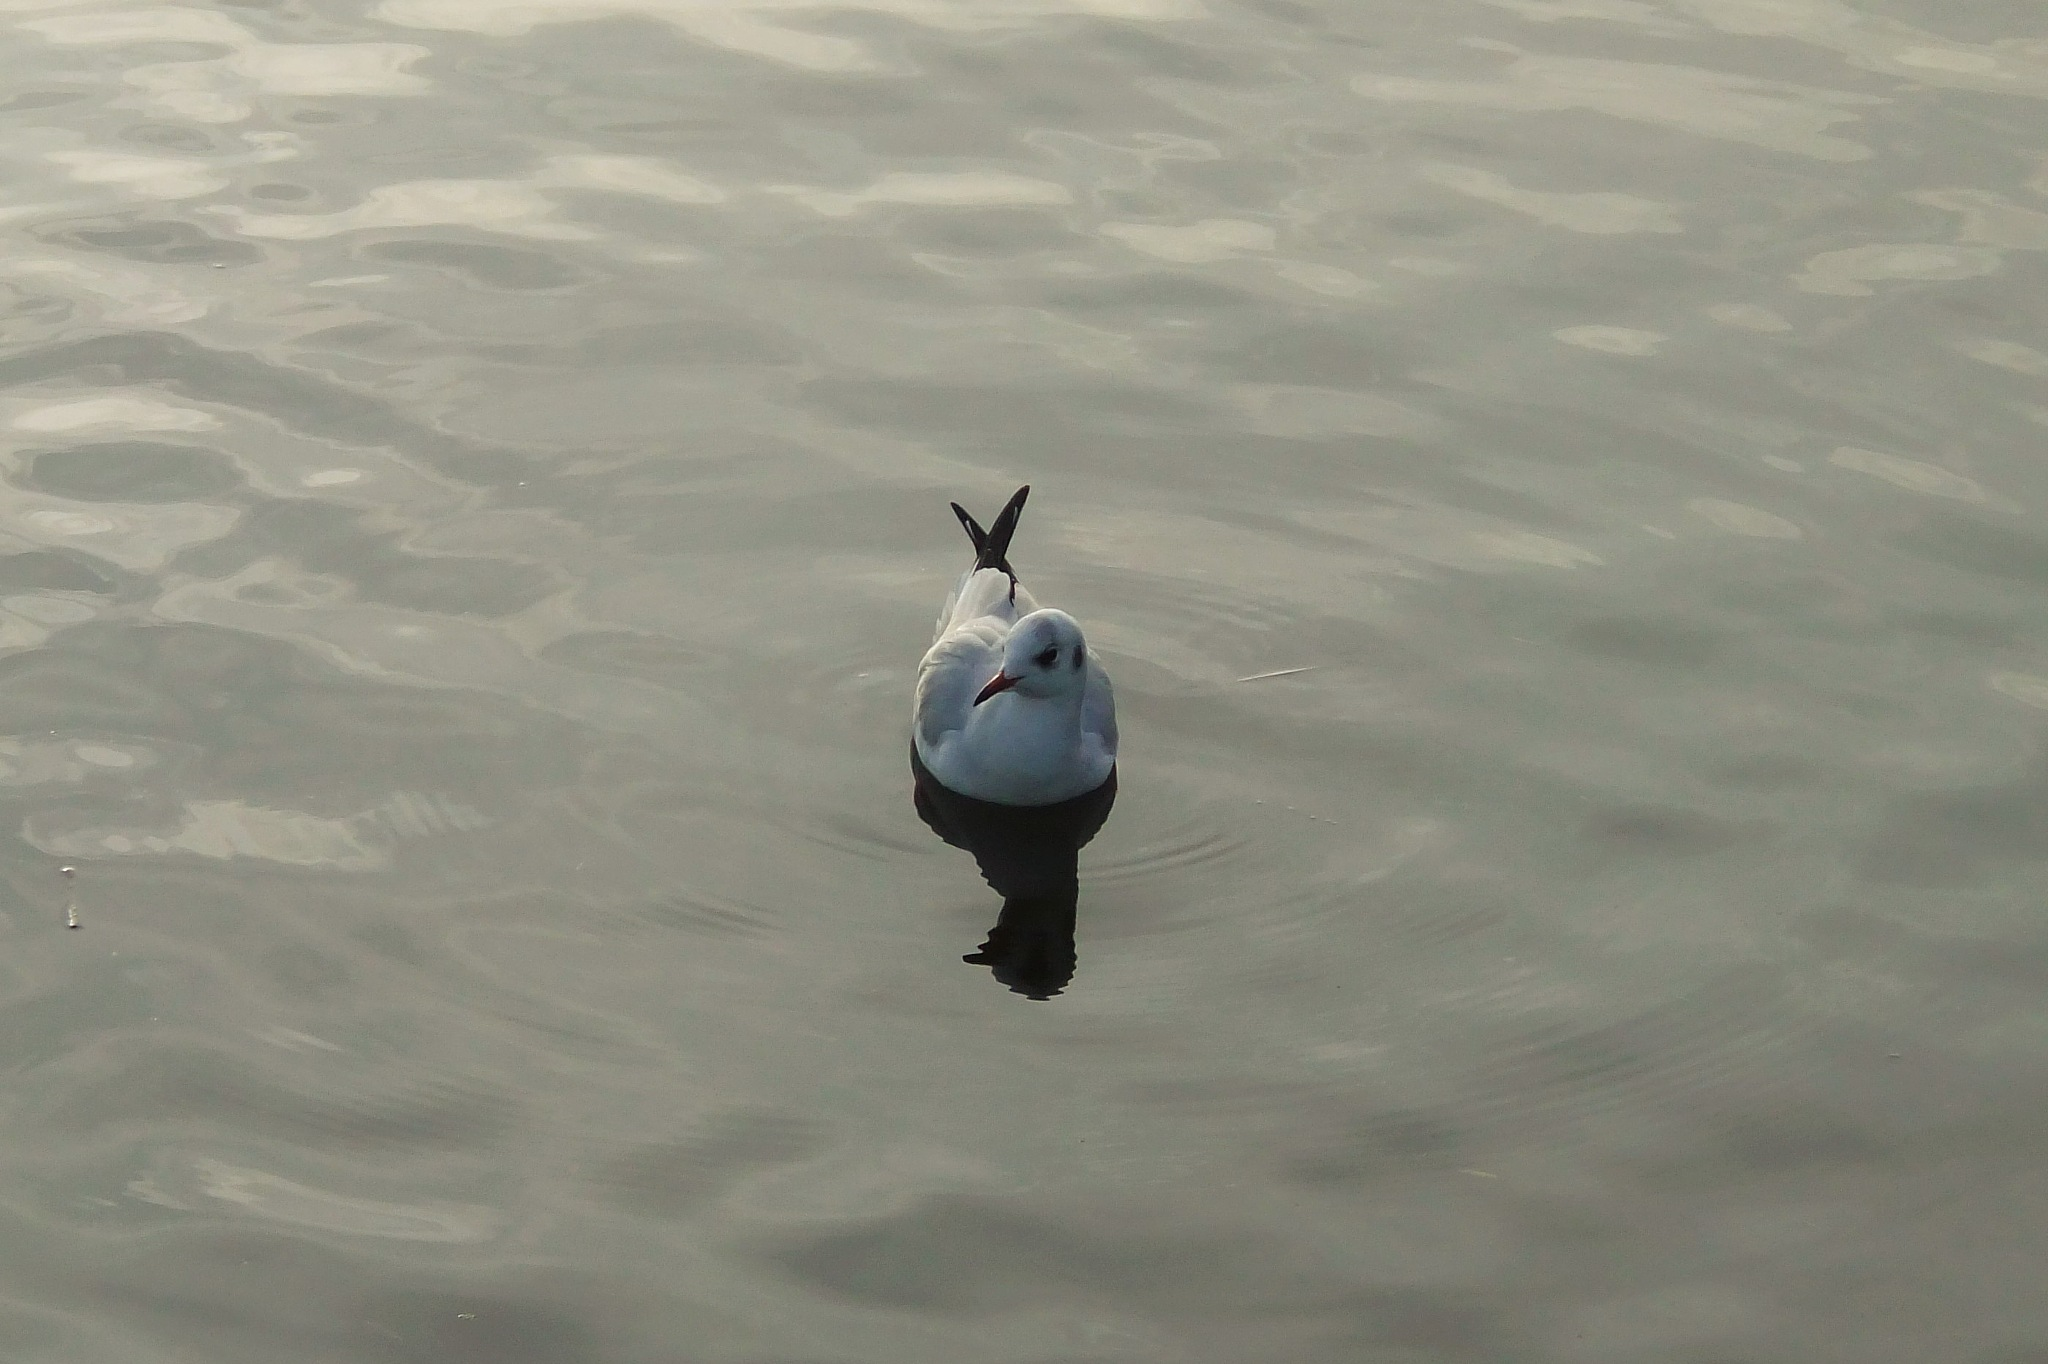 A gull on water by Oliver Neumann